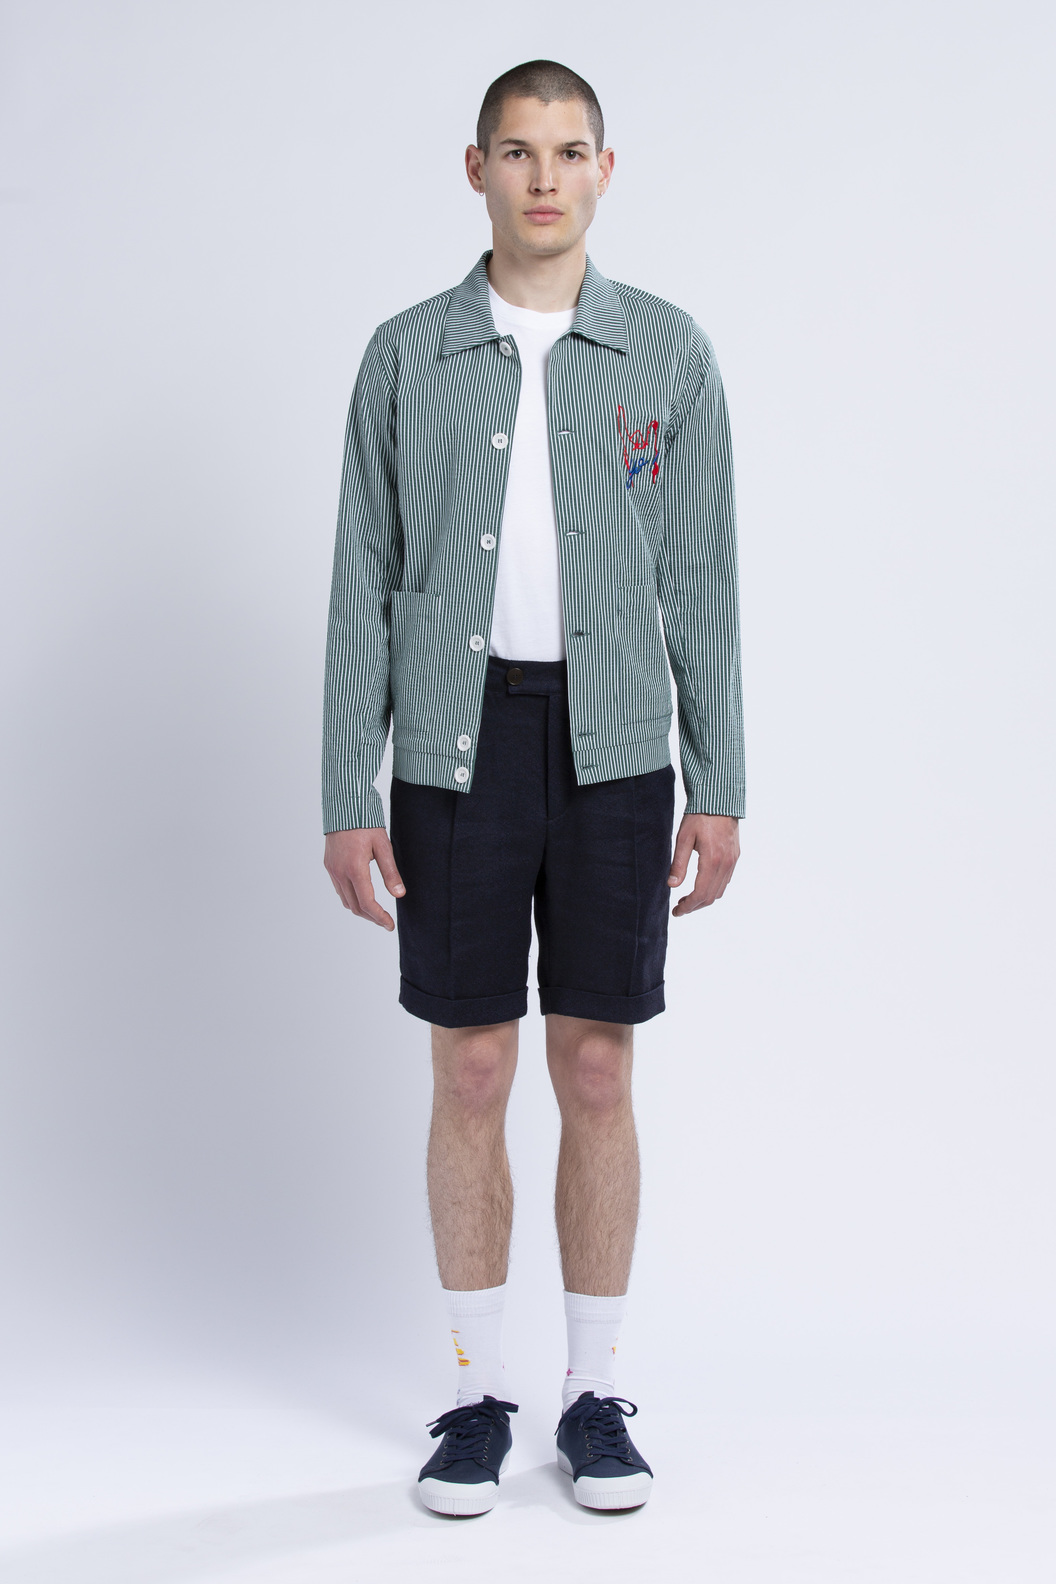 JACKET  CORTO  - Green stripes